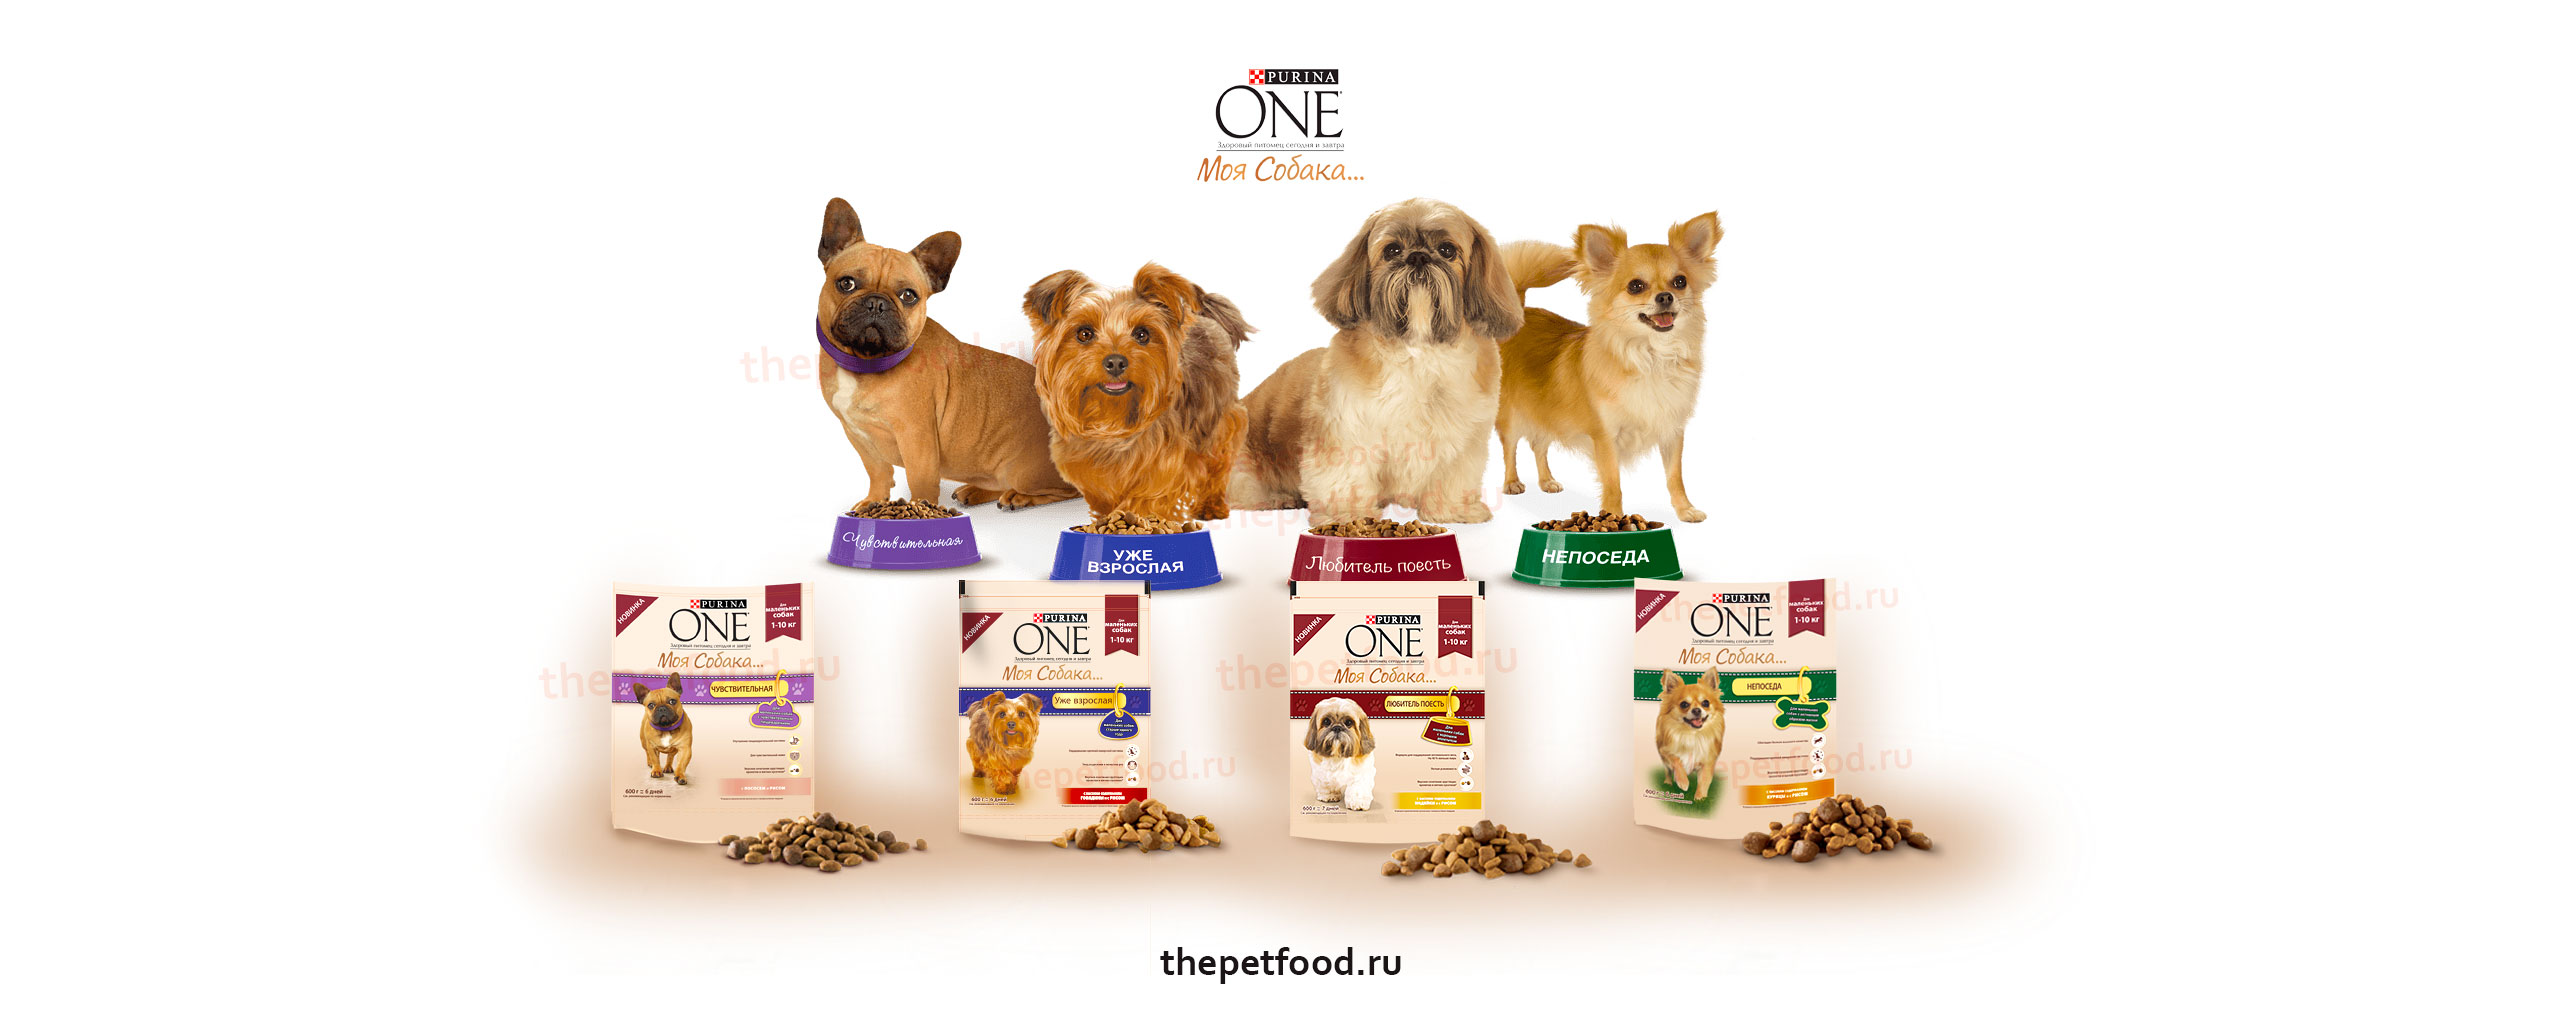 purina one пурина ван моя собака сухие корма